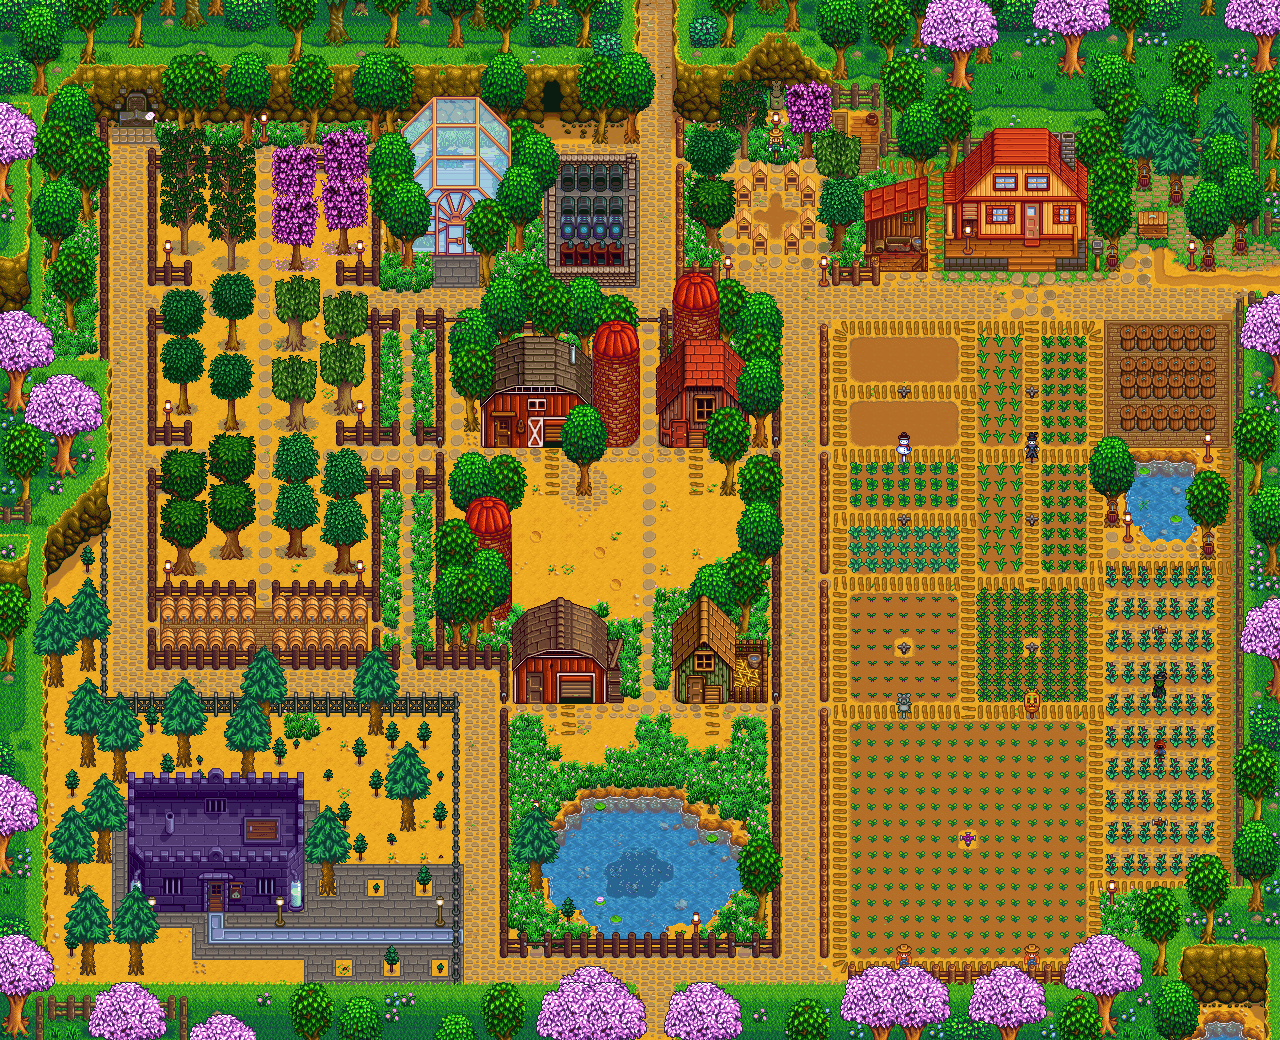 Stardew Farm Stardew Valley Stardew Valley Layout Stardew Valley Farms